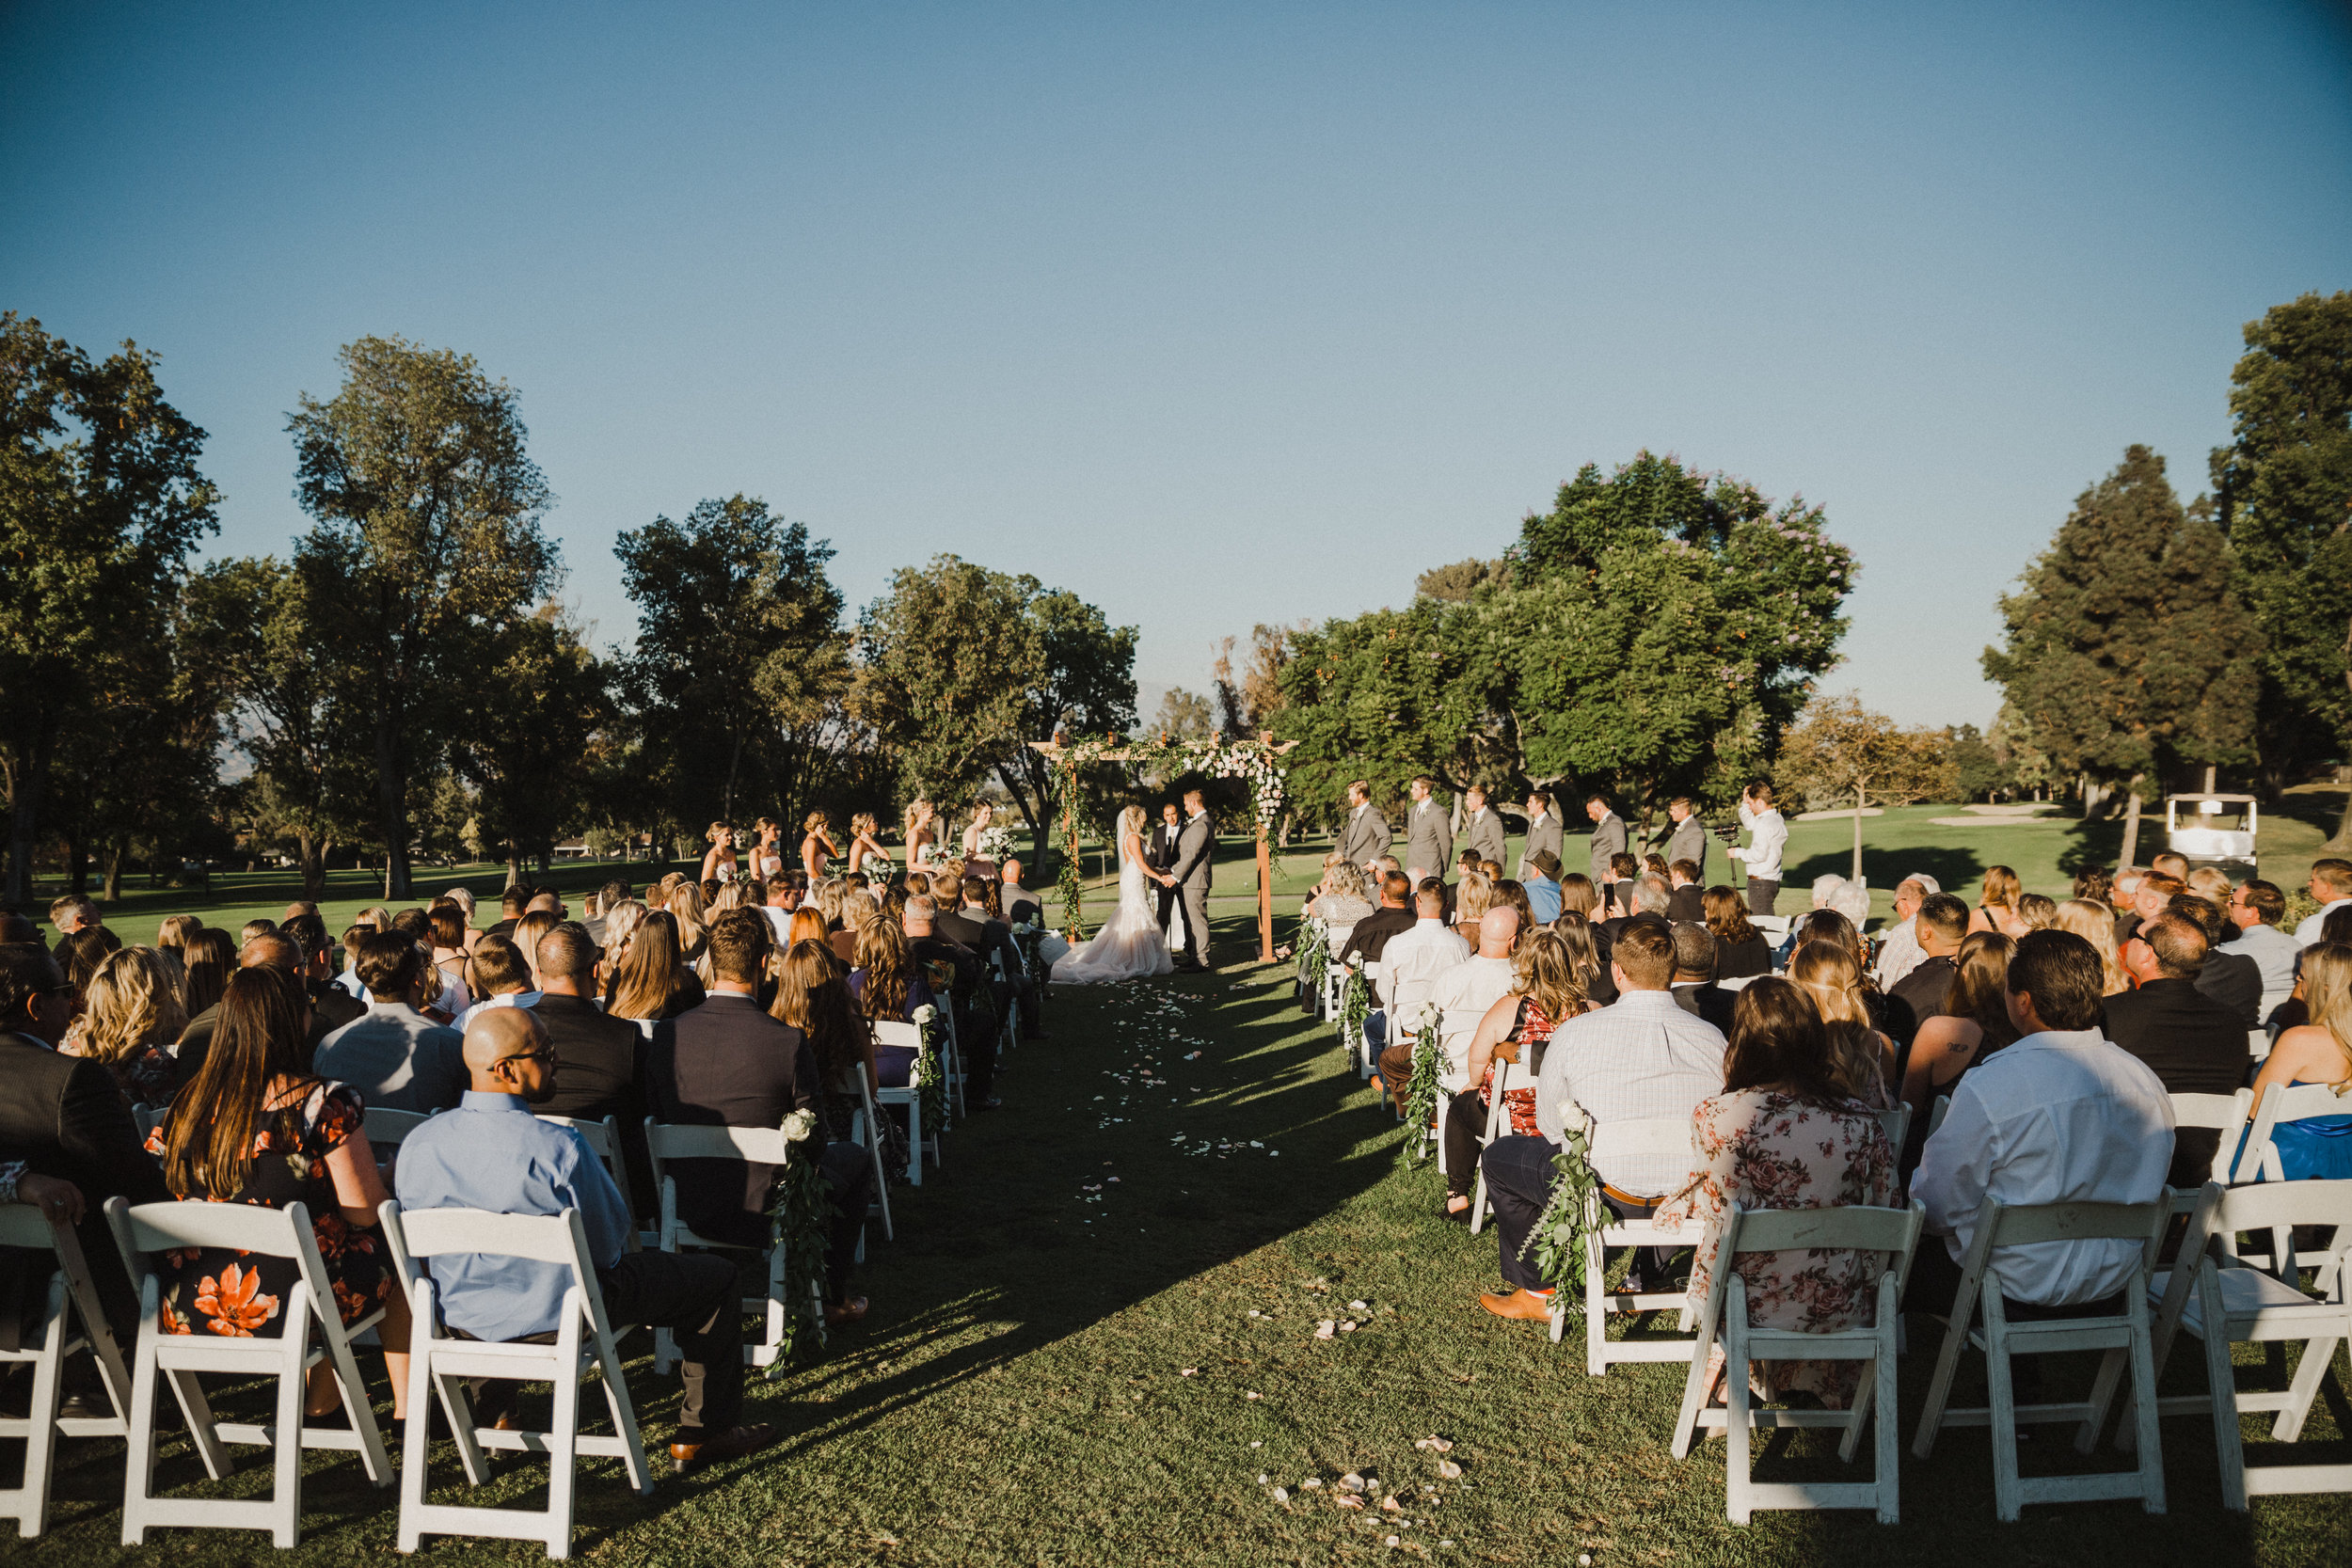 DianaLakePhoto-A+C-Wedding-Ceremony_133.jpg